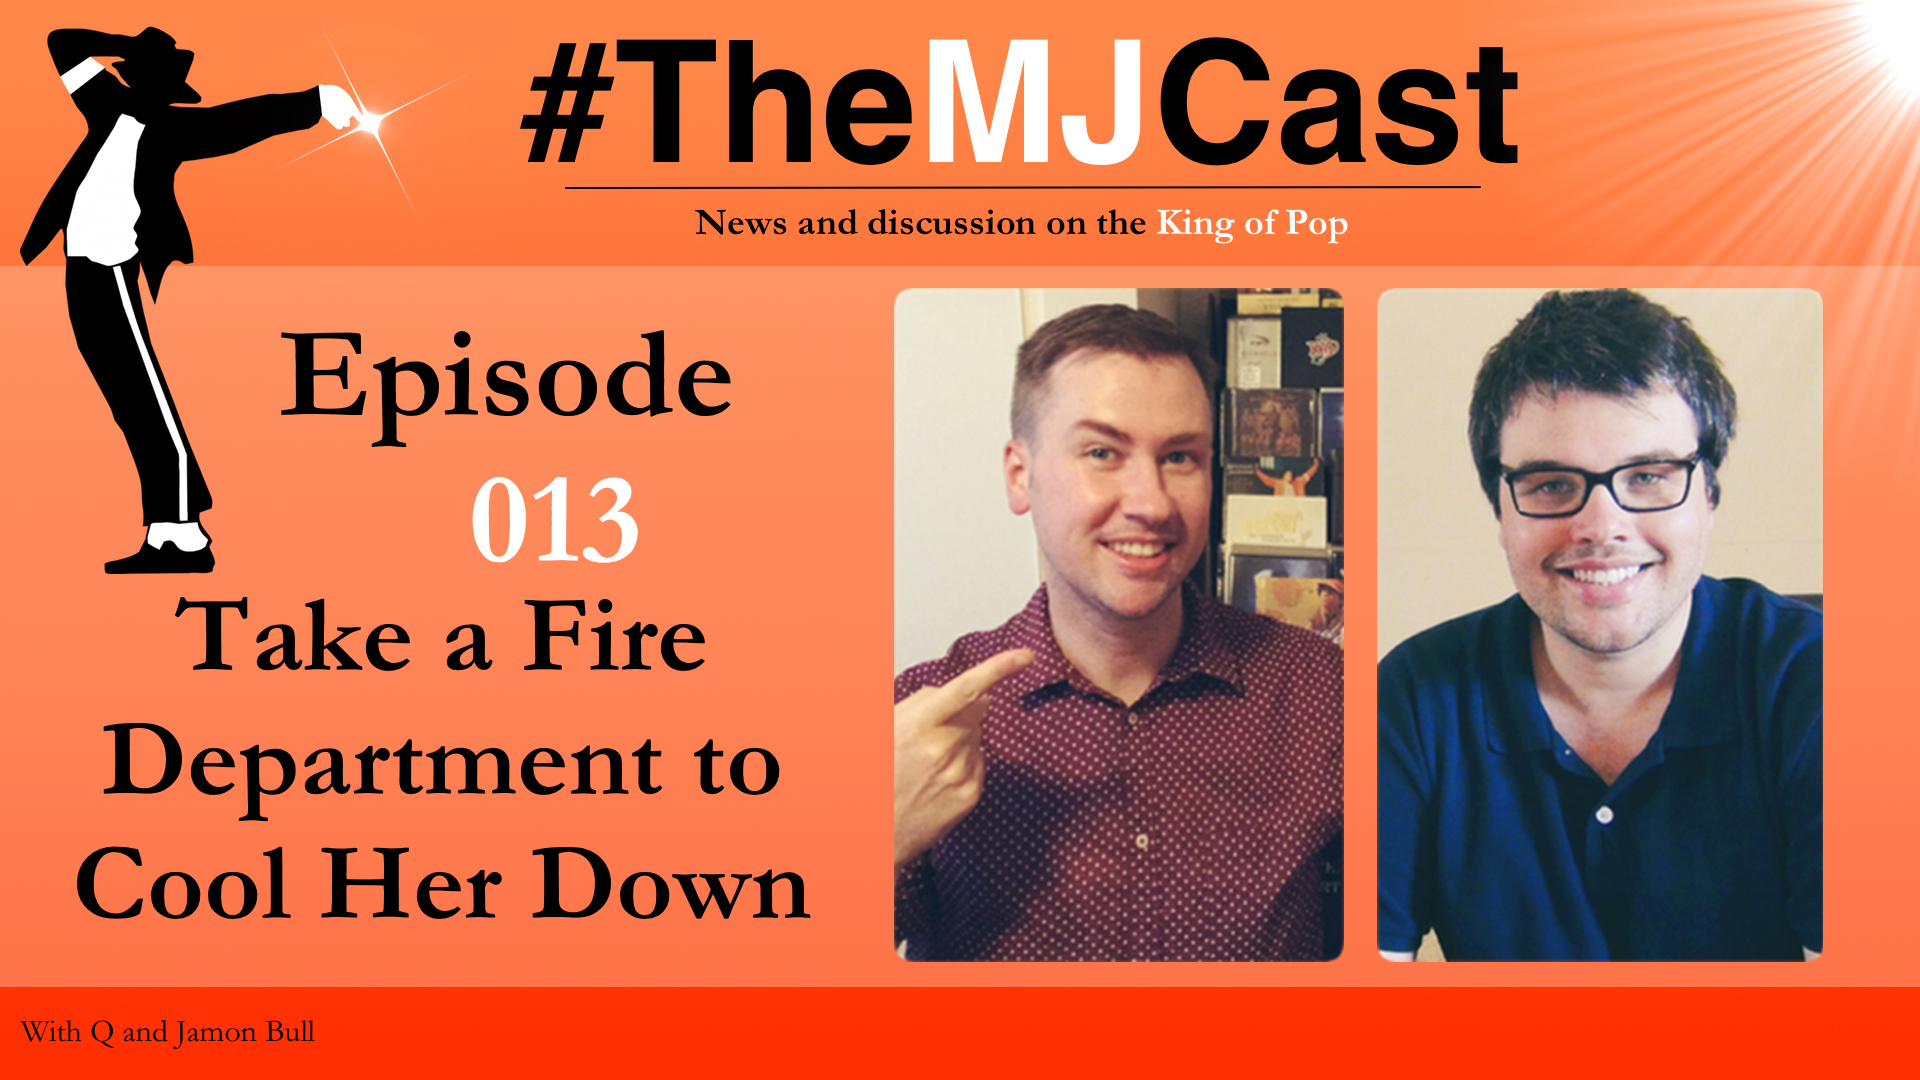 The MJCast Episode 013 - Take a Fire Department to Cool Her Down YouTube Art